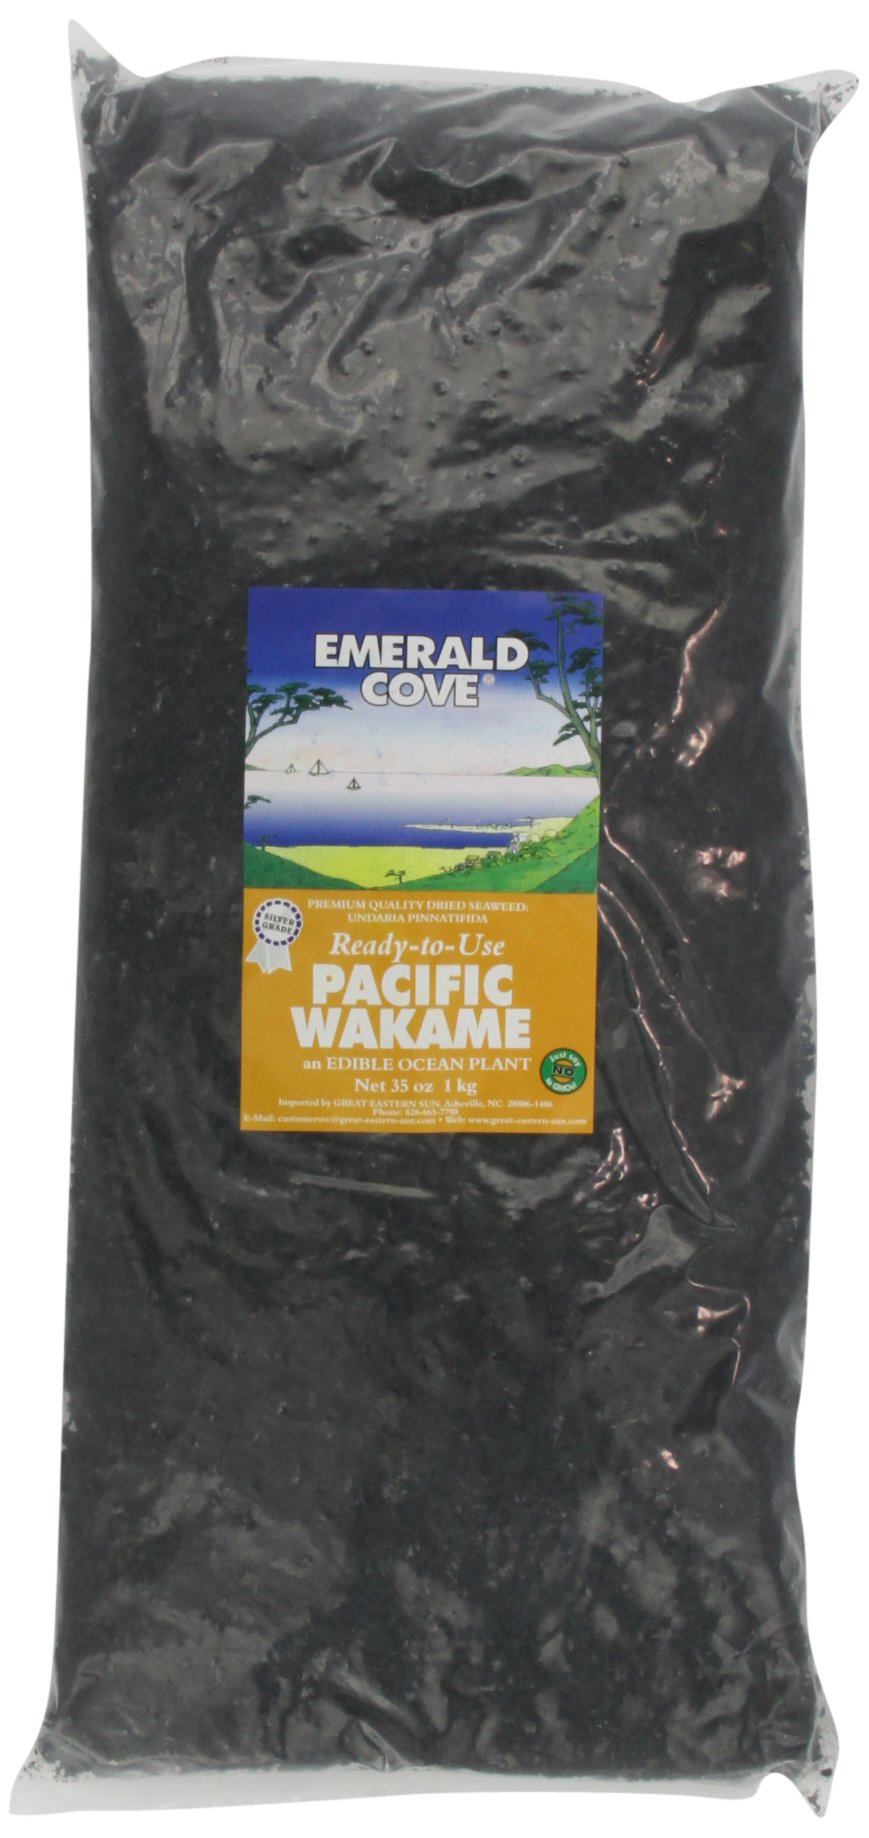 Emerald Cove Ready-to-Use Pacific Dried Seaweed Bag, Wakame, 35 Ounce